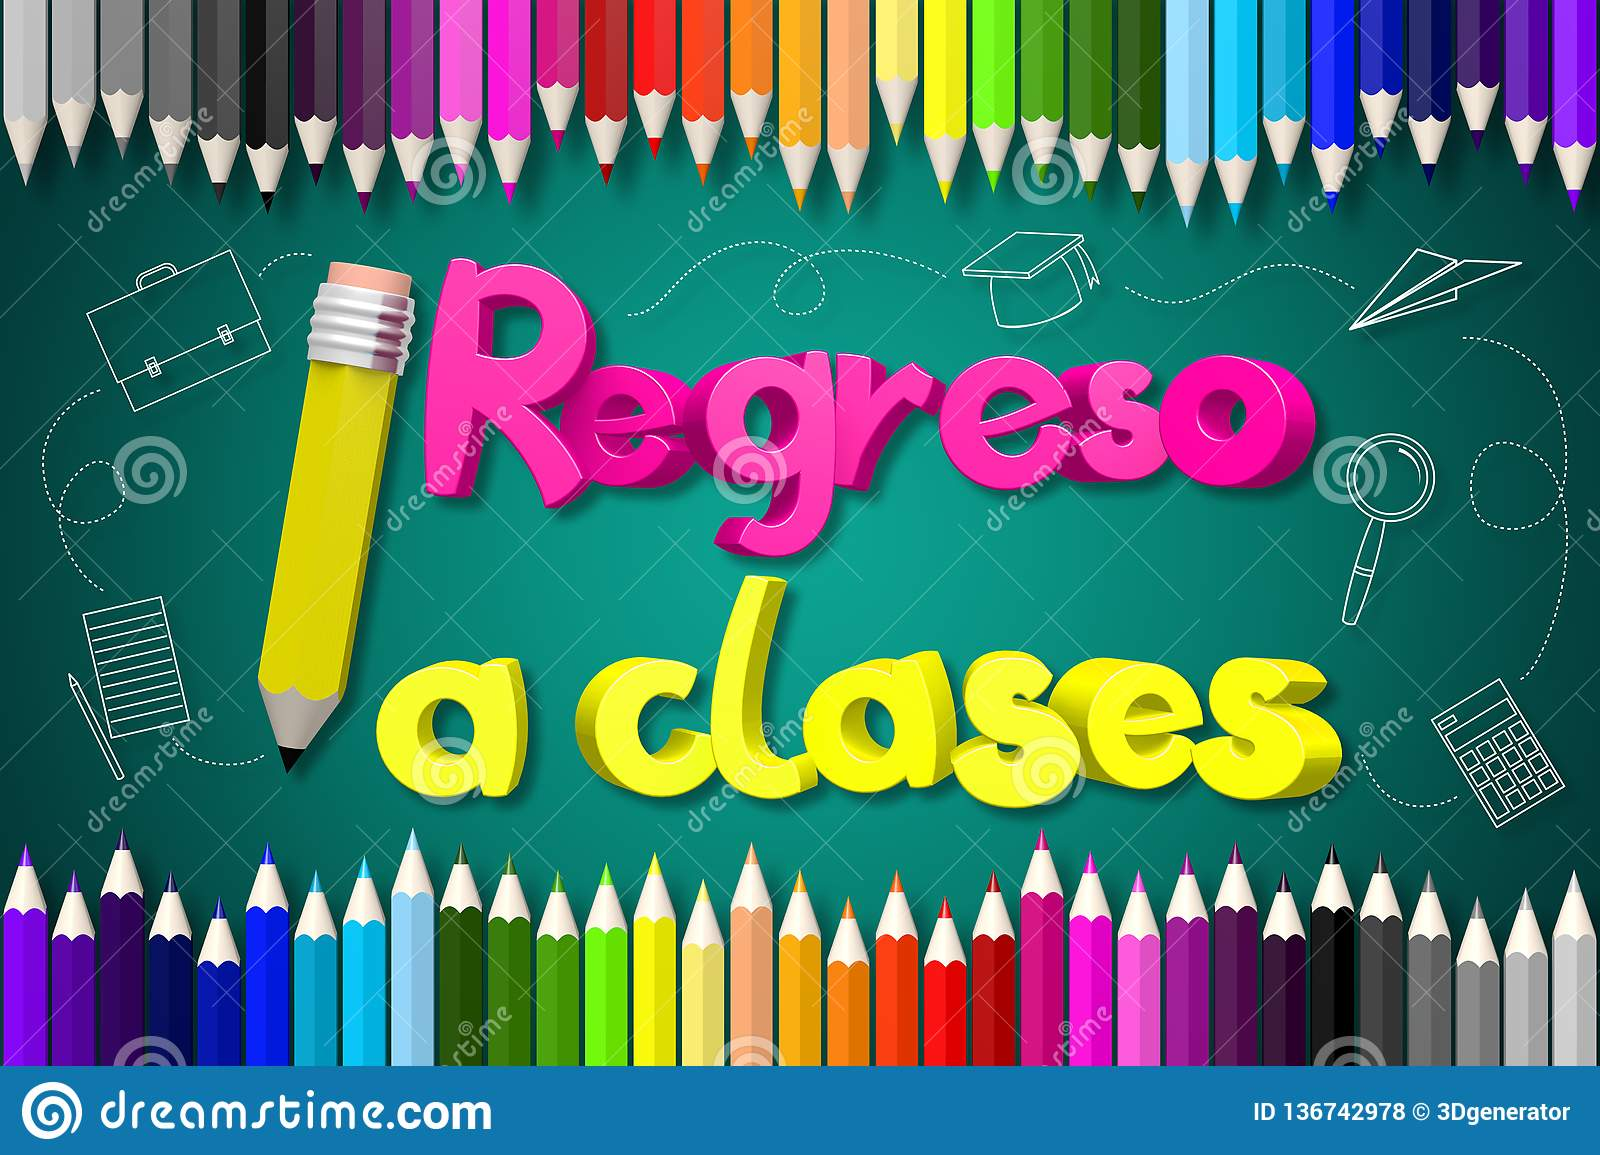 Back To School English Regreso A Clases Spanish Stock Illustration Illustration Of School Crayon 136742978